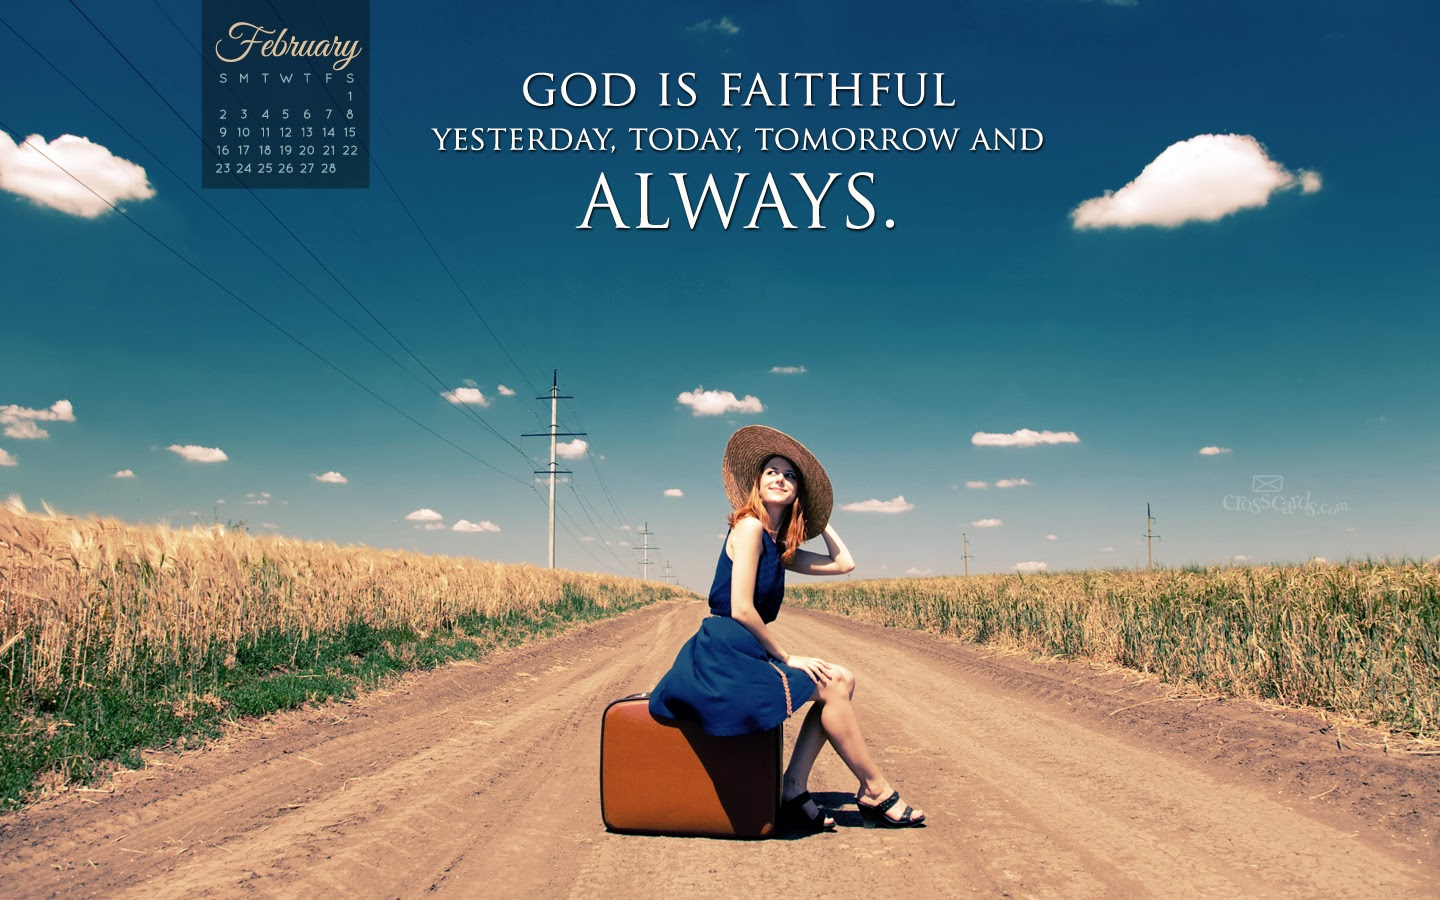 Card Wallpapers 2014 February Bible Verse Desktop Calendars 1440x900